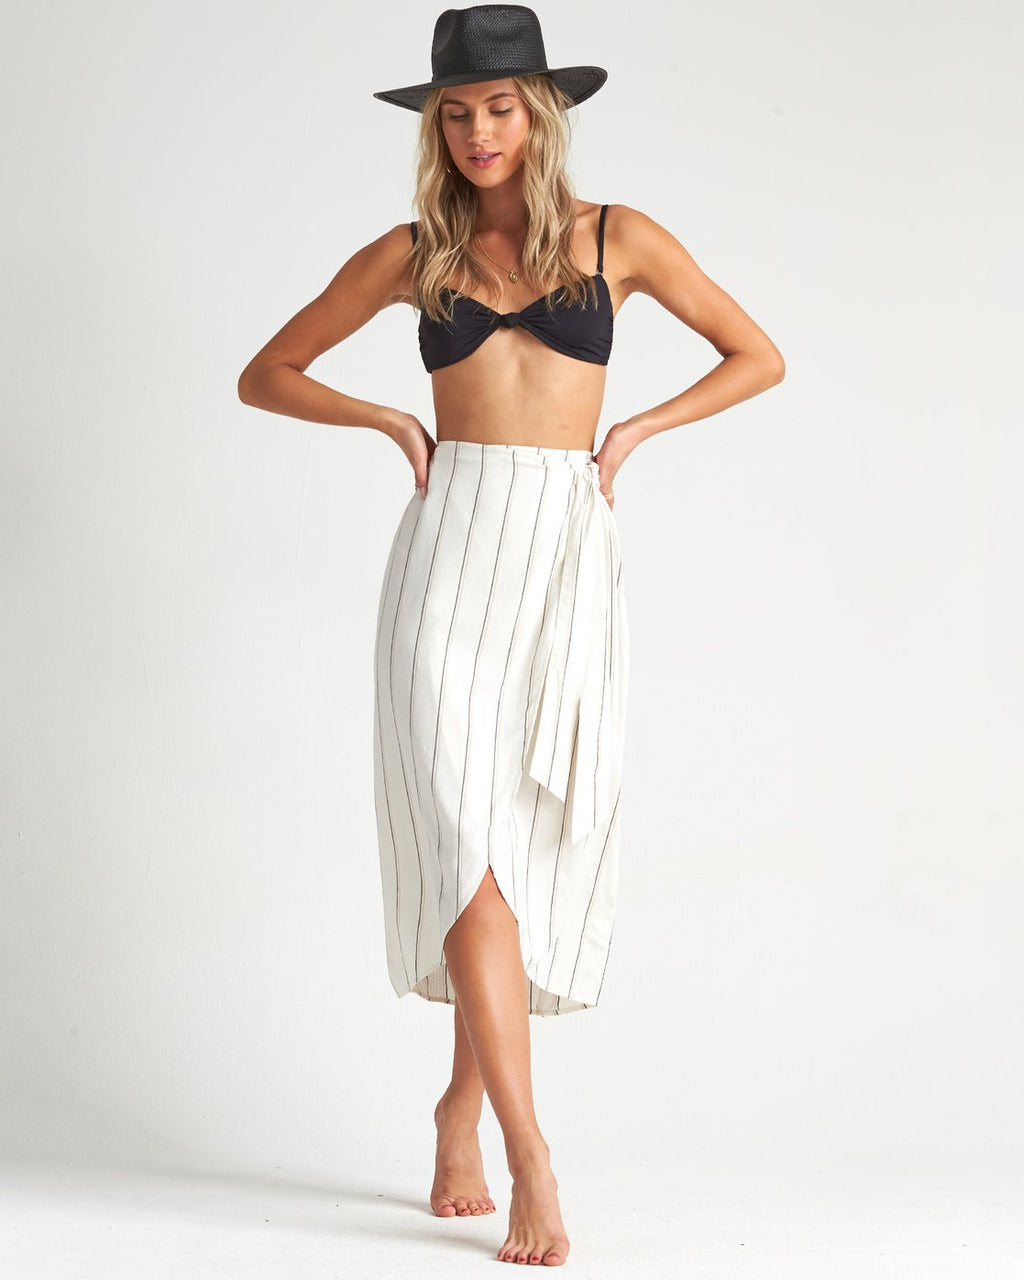 Stay Sarong Skirt (SCS) ONLINE EXCLUSIVE